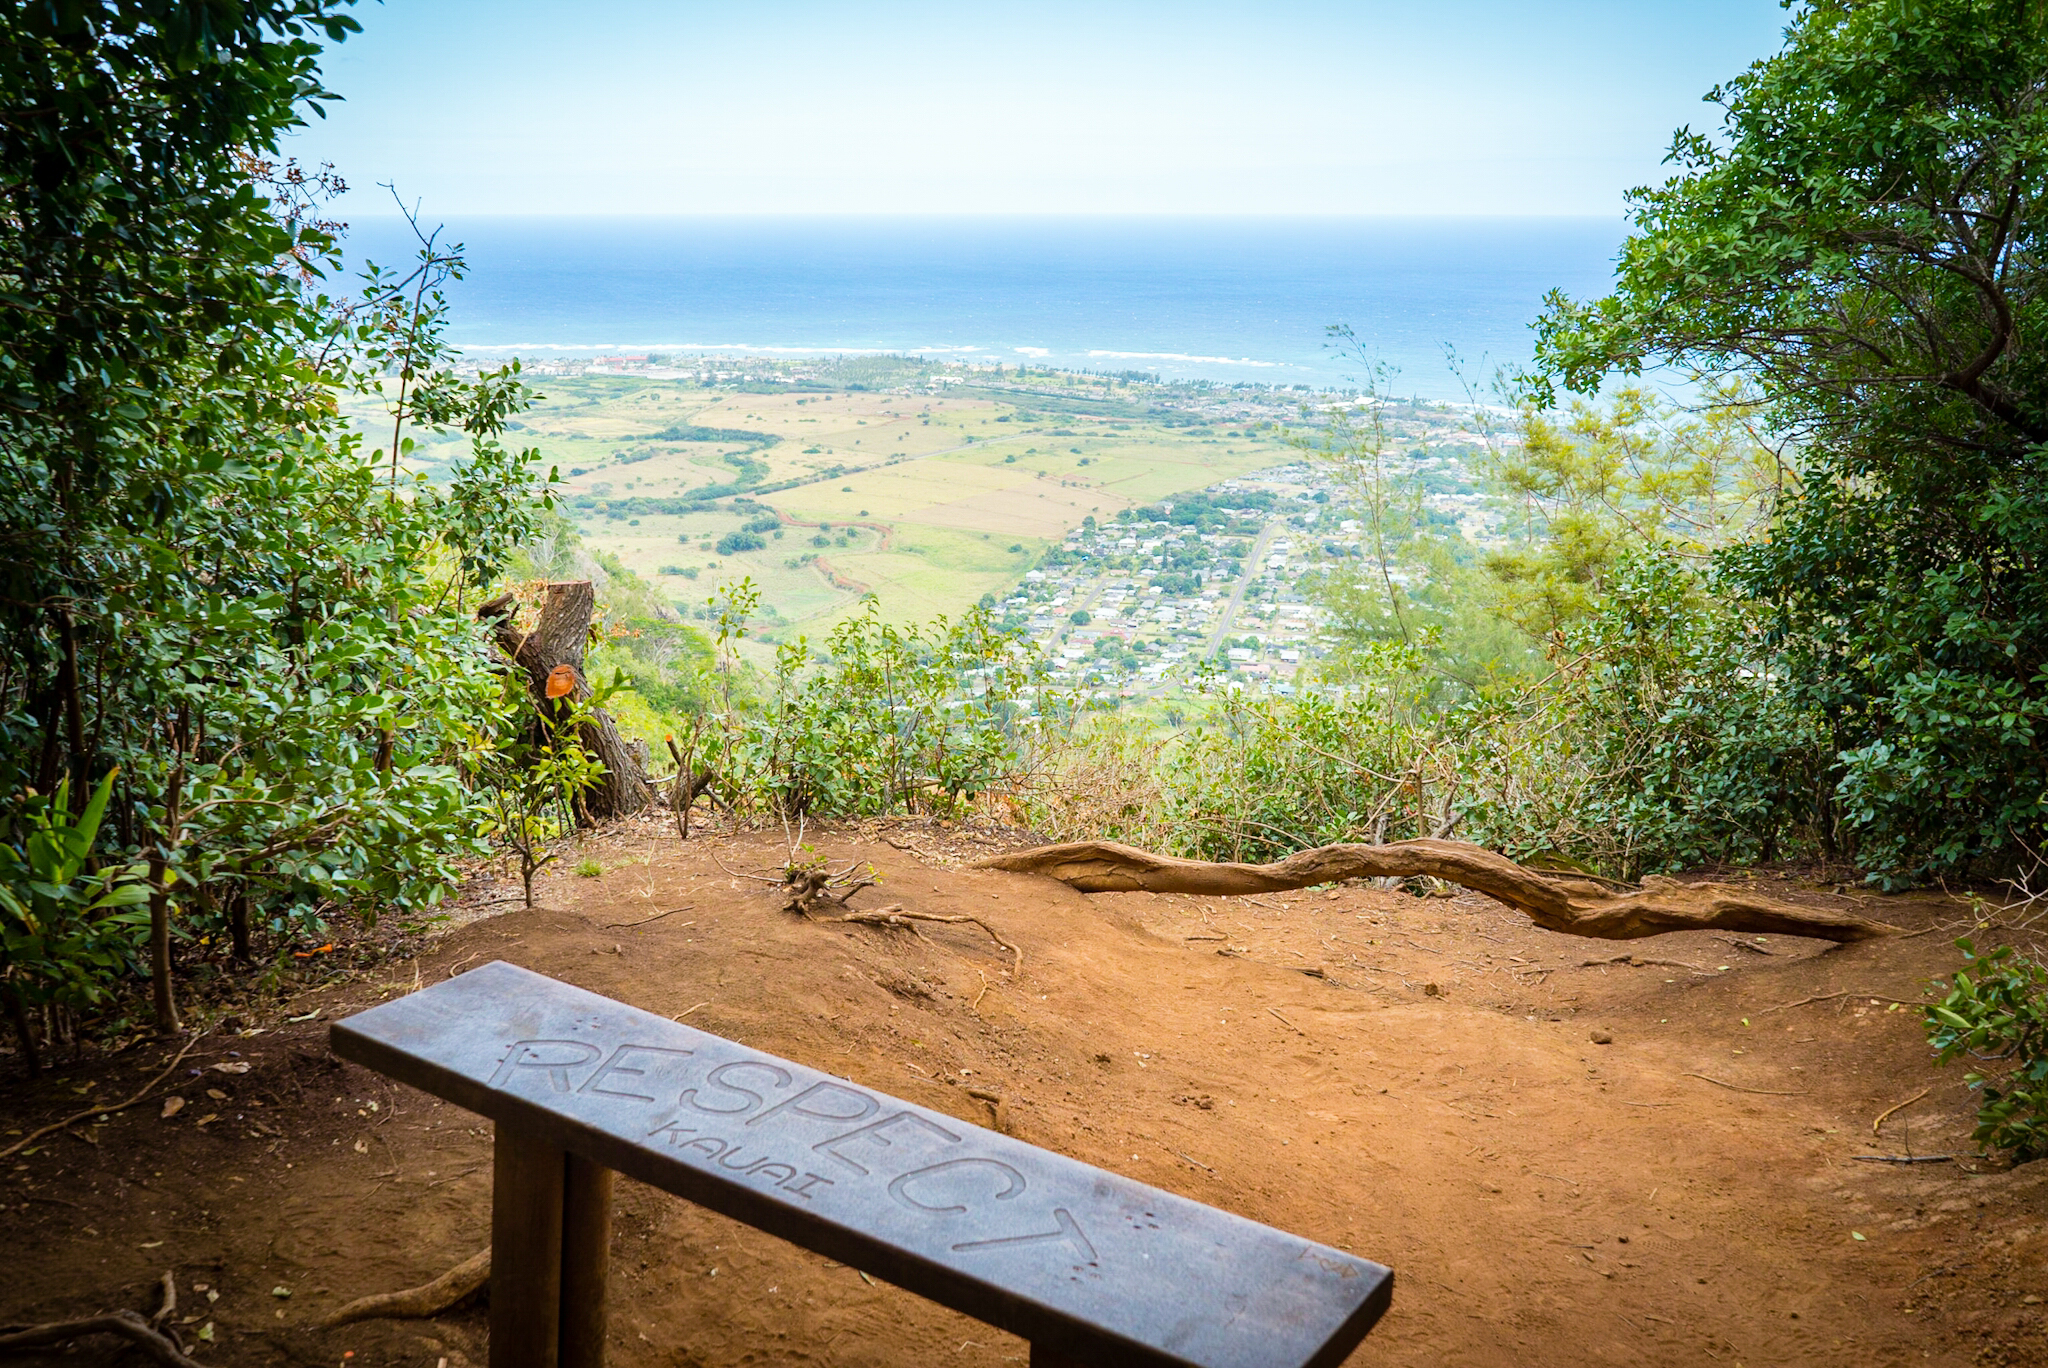 Hiking the sleeping giant trail in Kauai